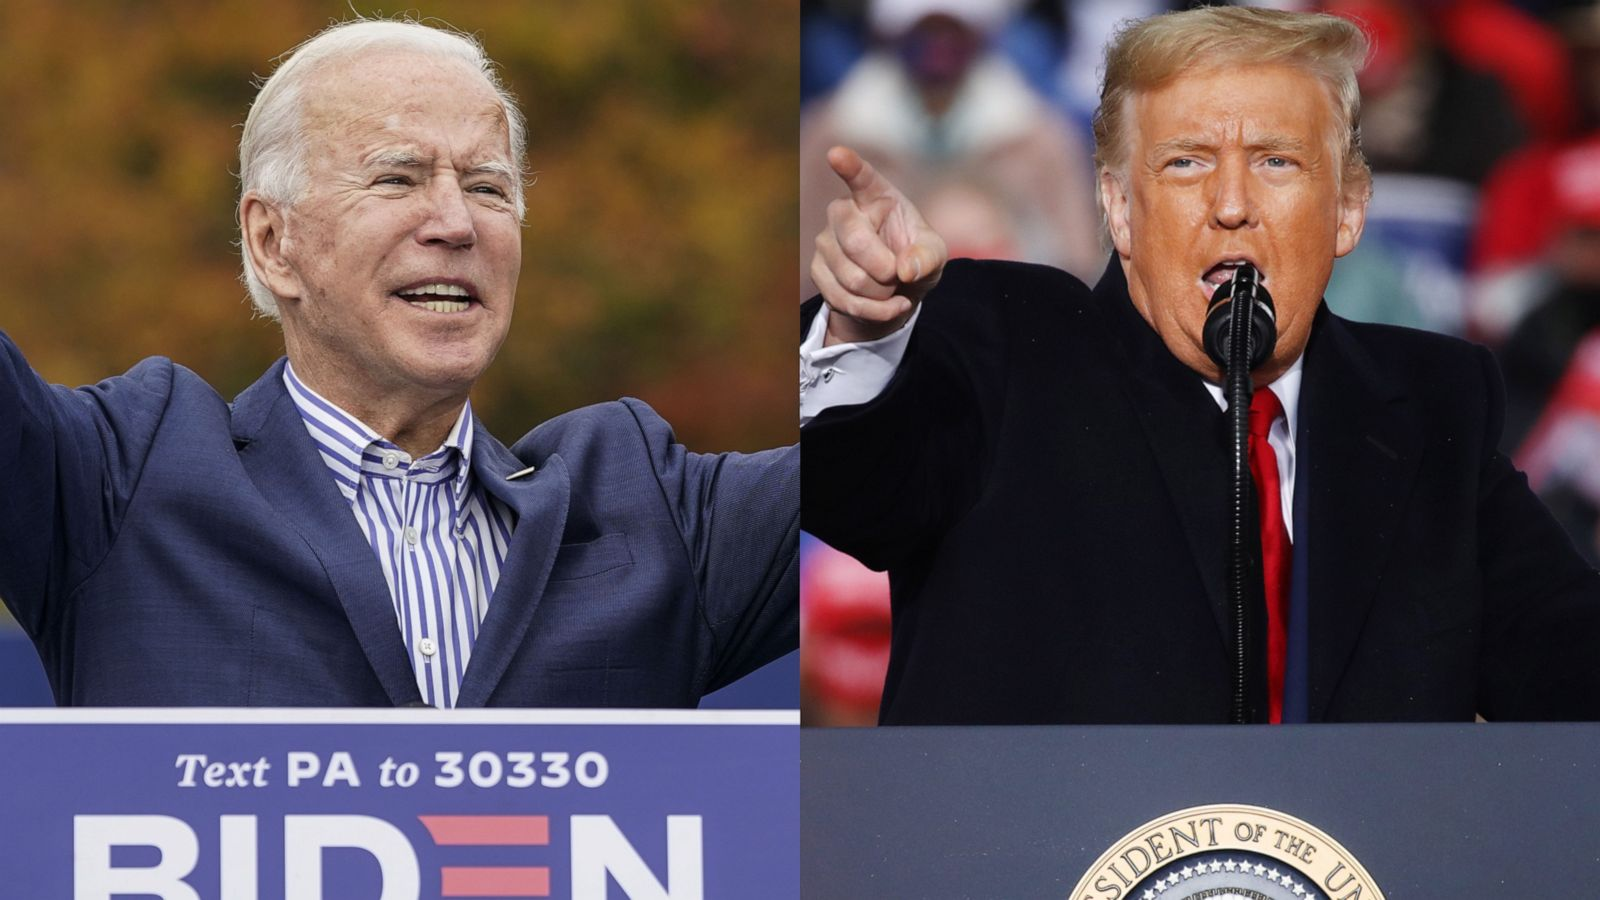 Surprise! October Surprises Don't Usually Decide Elections